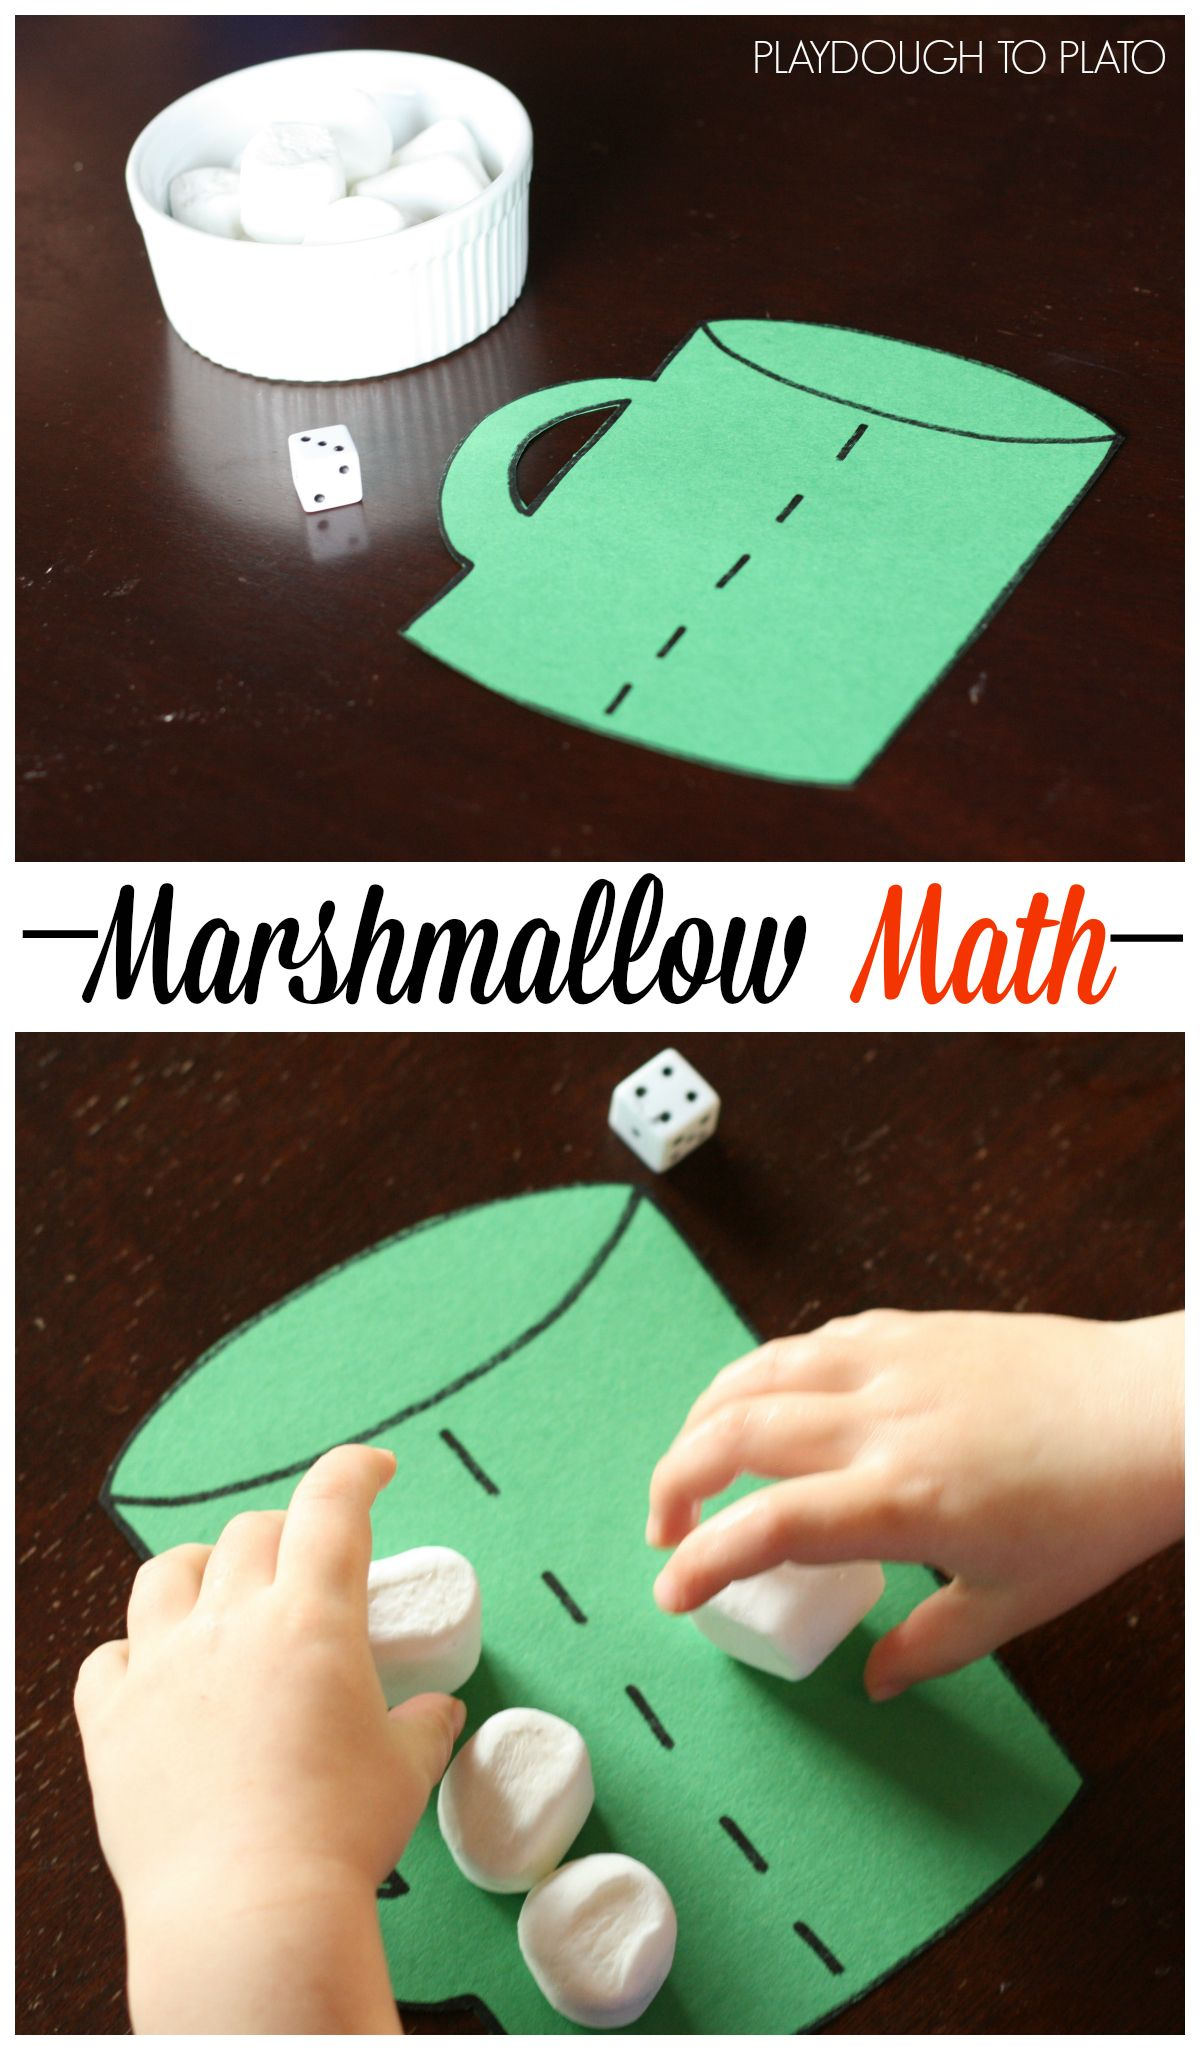 Marshmallow Math | Number, Gaming and Math